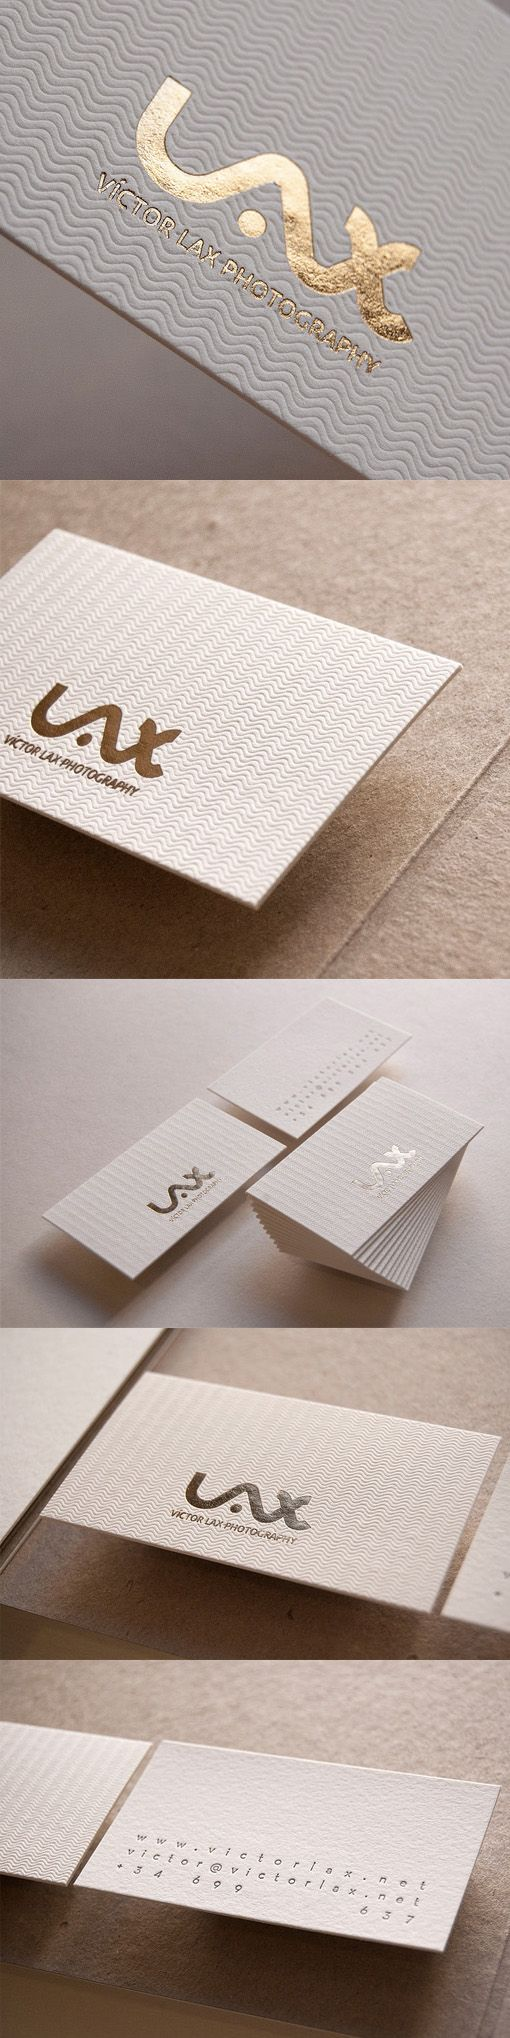 604 best Business card / CDV images on Pinterest | Business cards ...